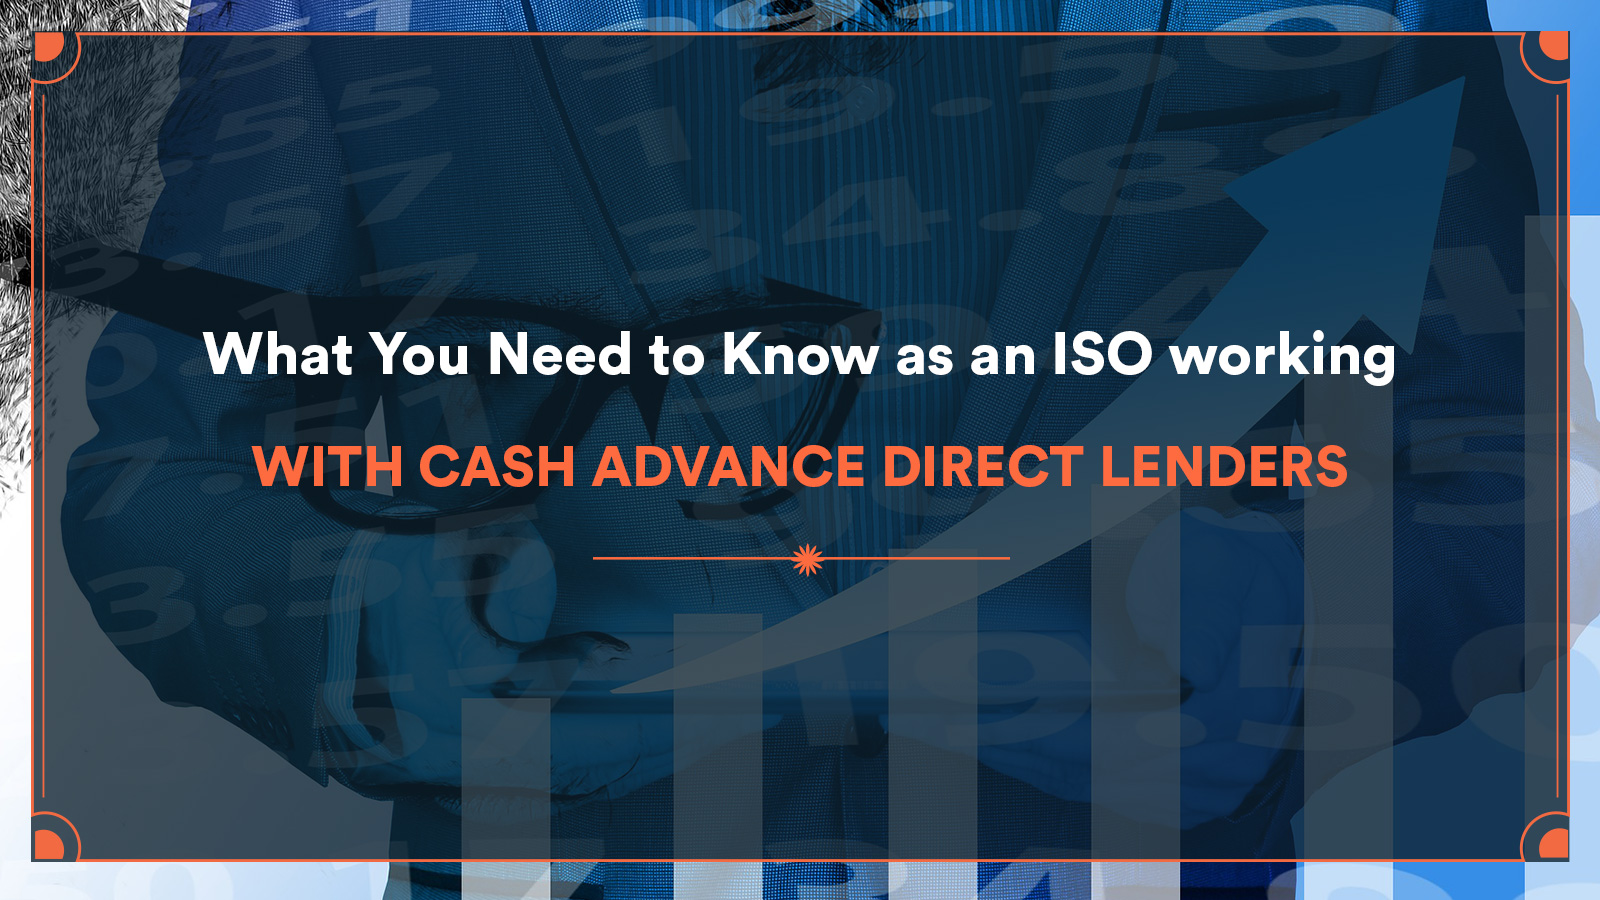 cash advance direct lenders